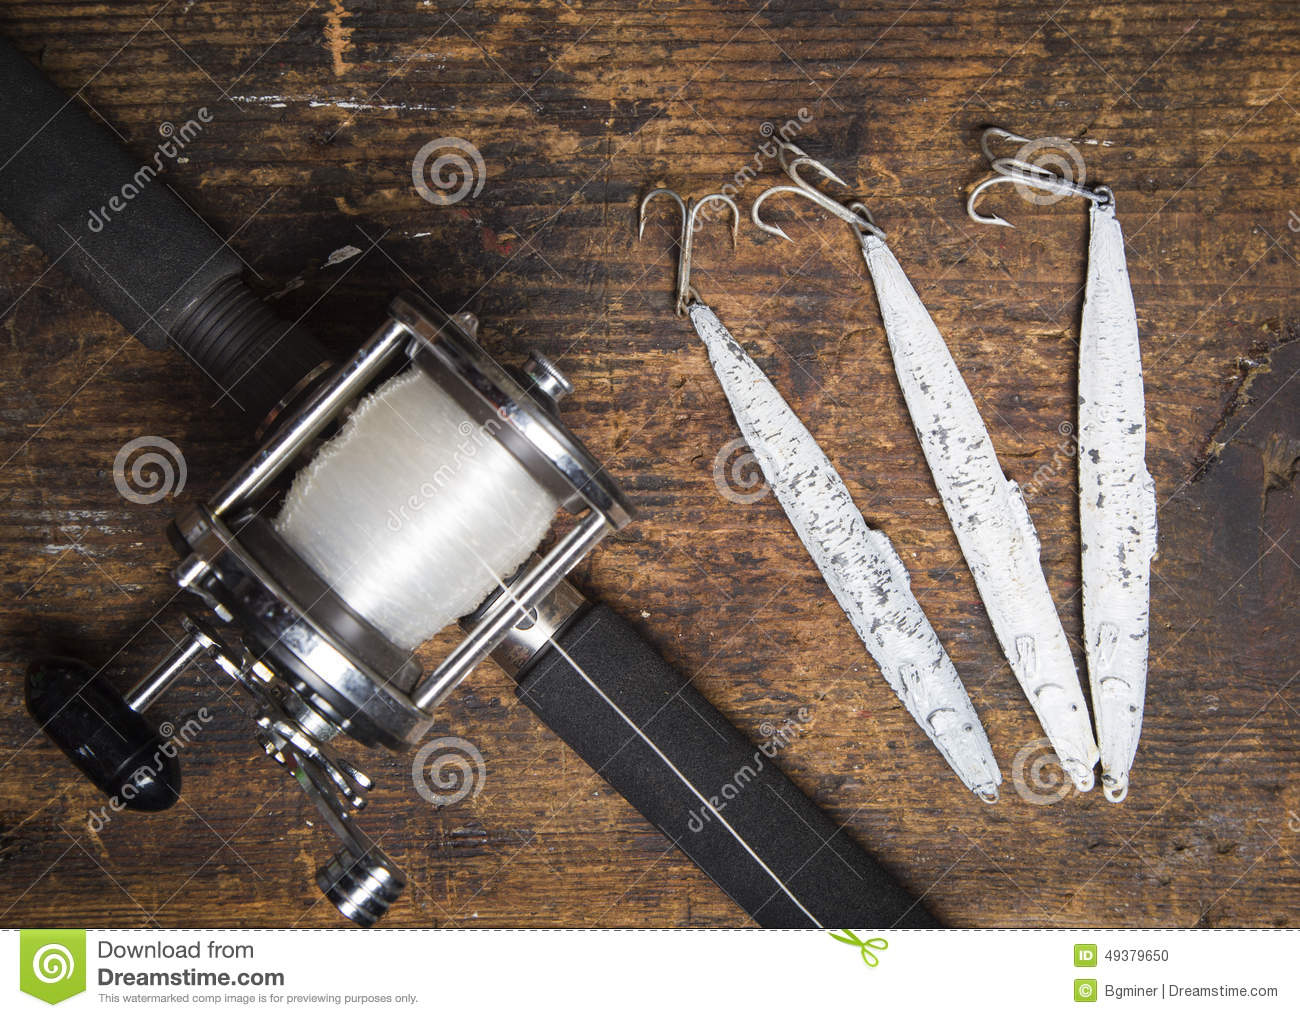 saltwater fishing rod and lures stock photo - image: 49379650, Fishing Rod